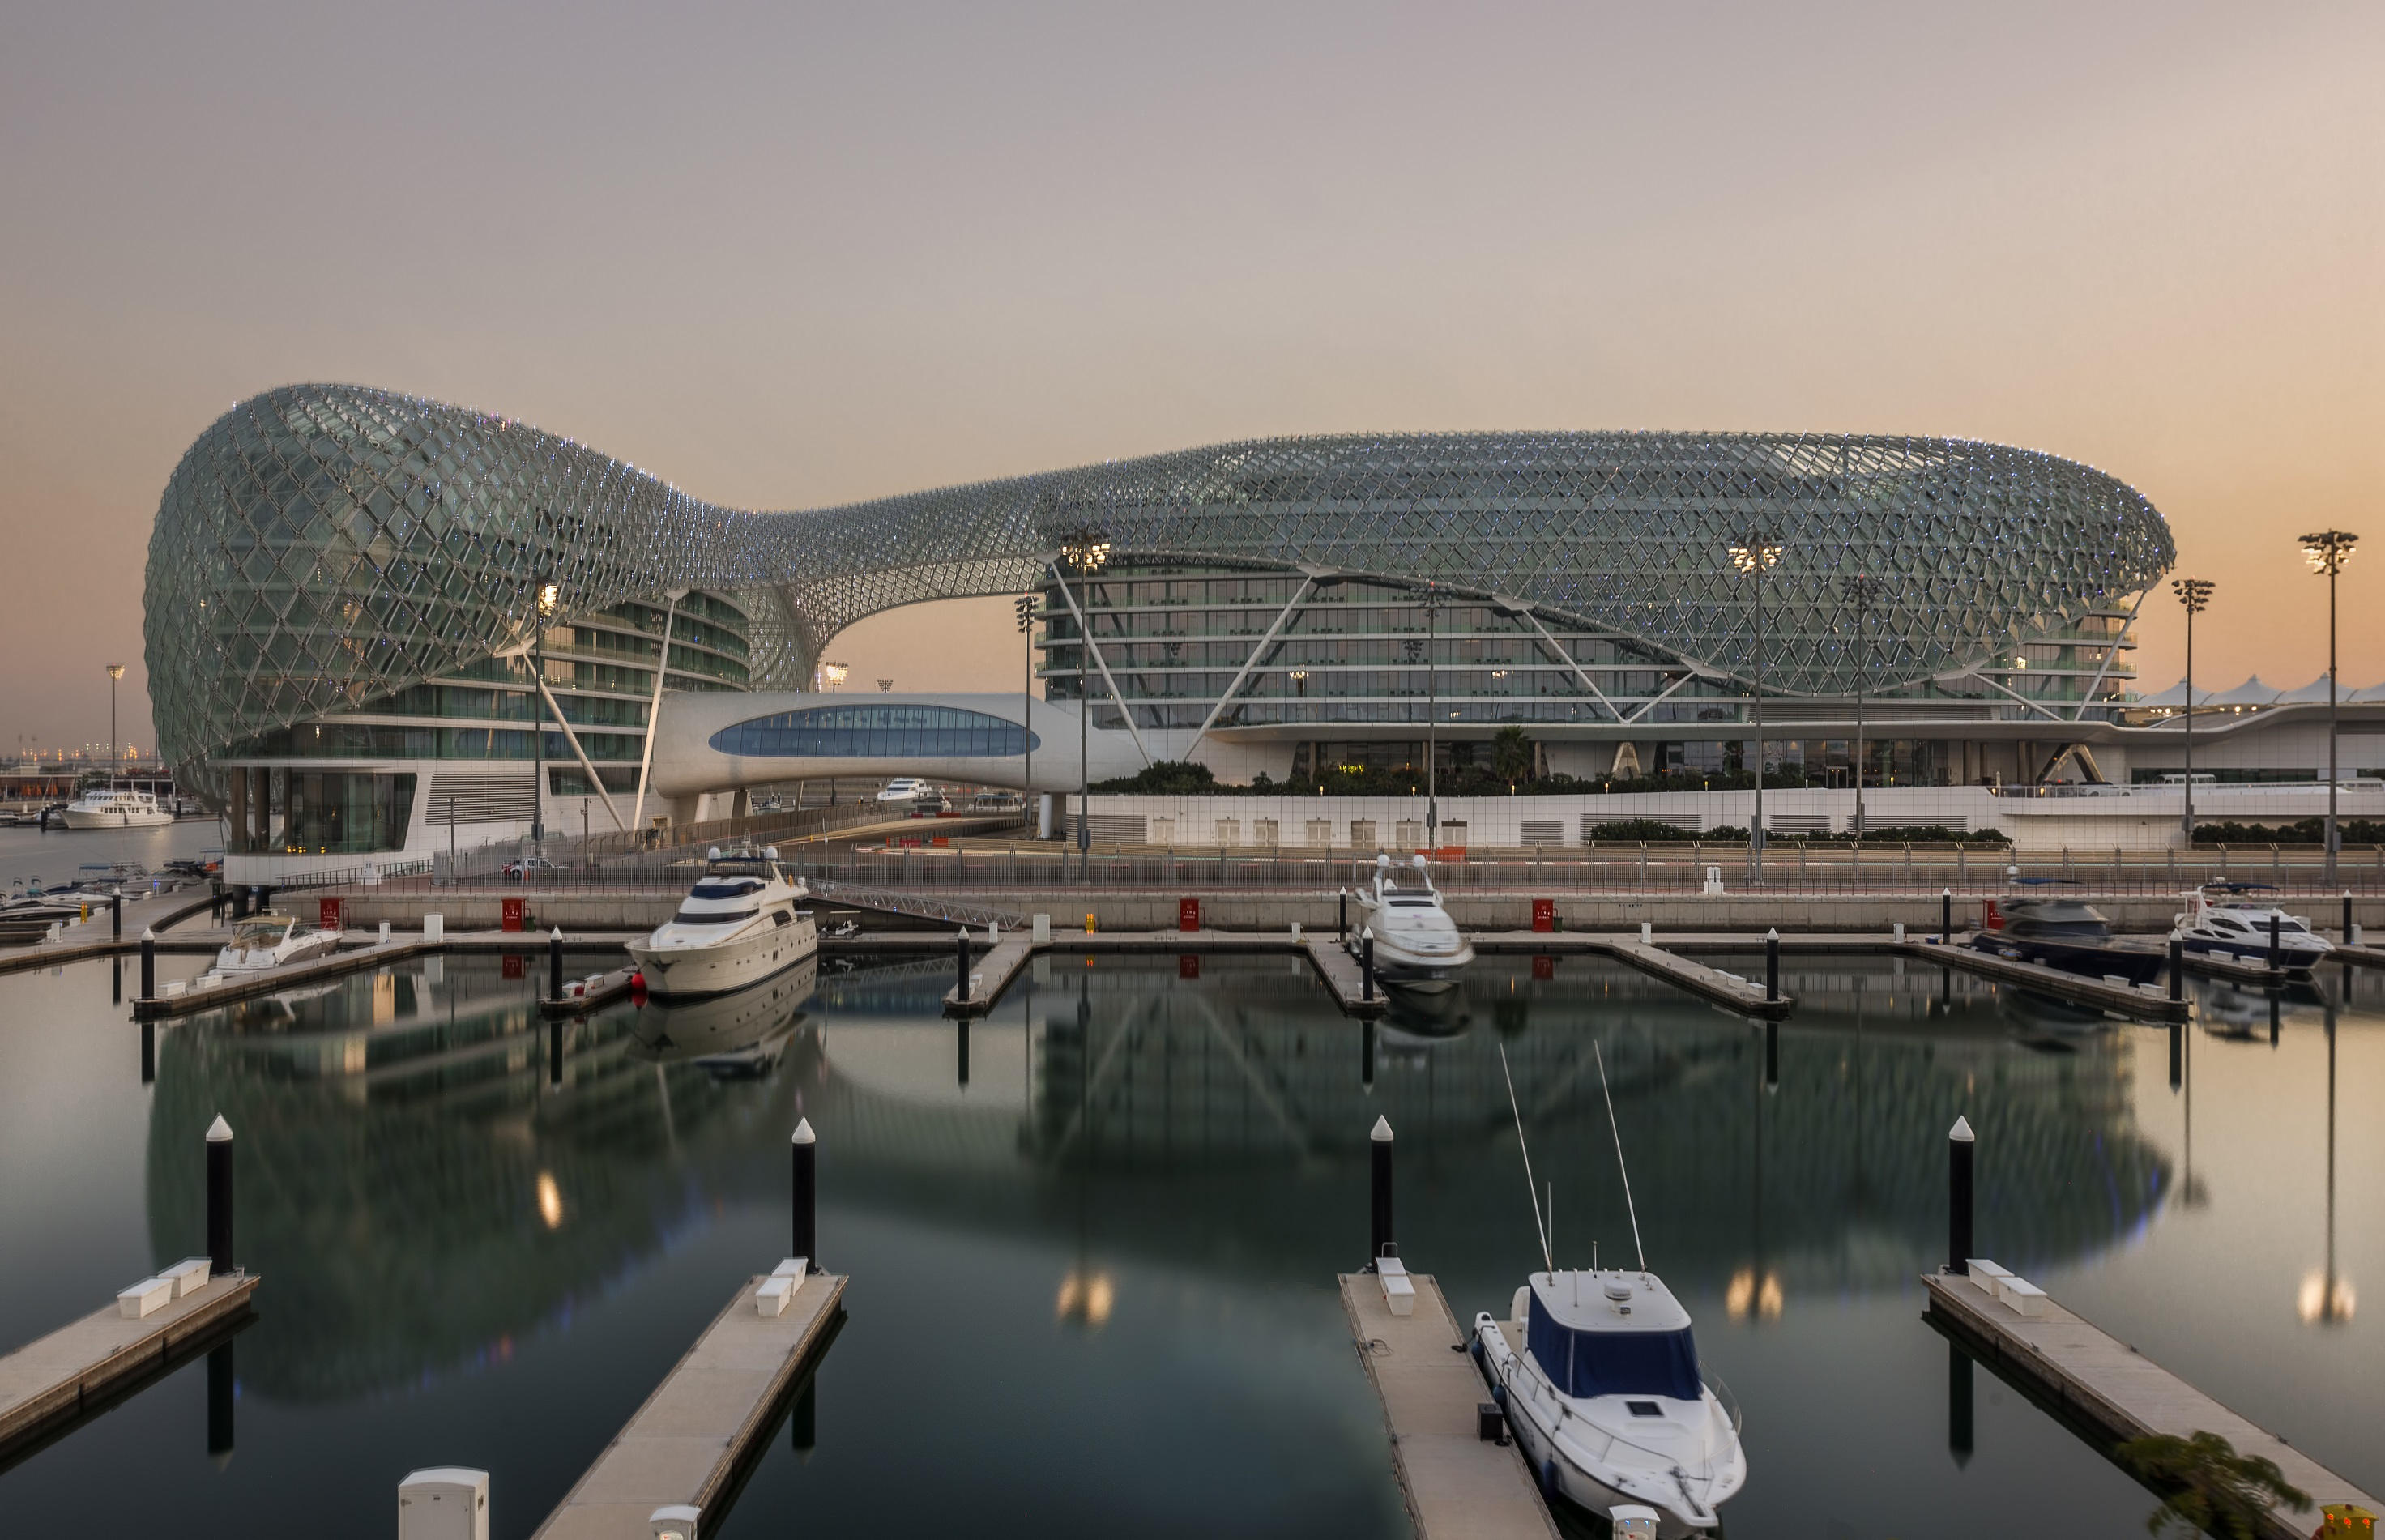 GIOHIS will be held at Yas Viceroy Abu Dhabi